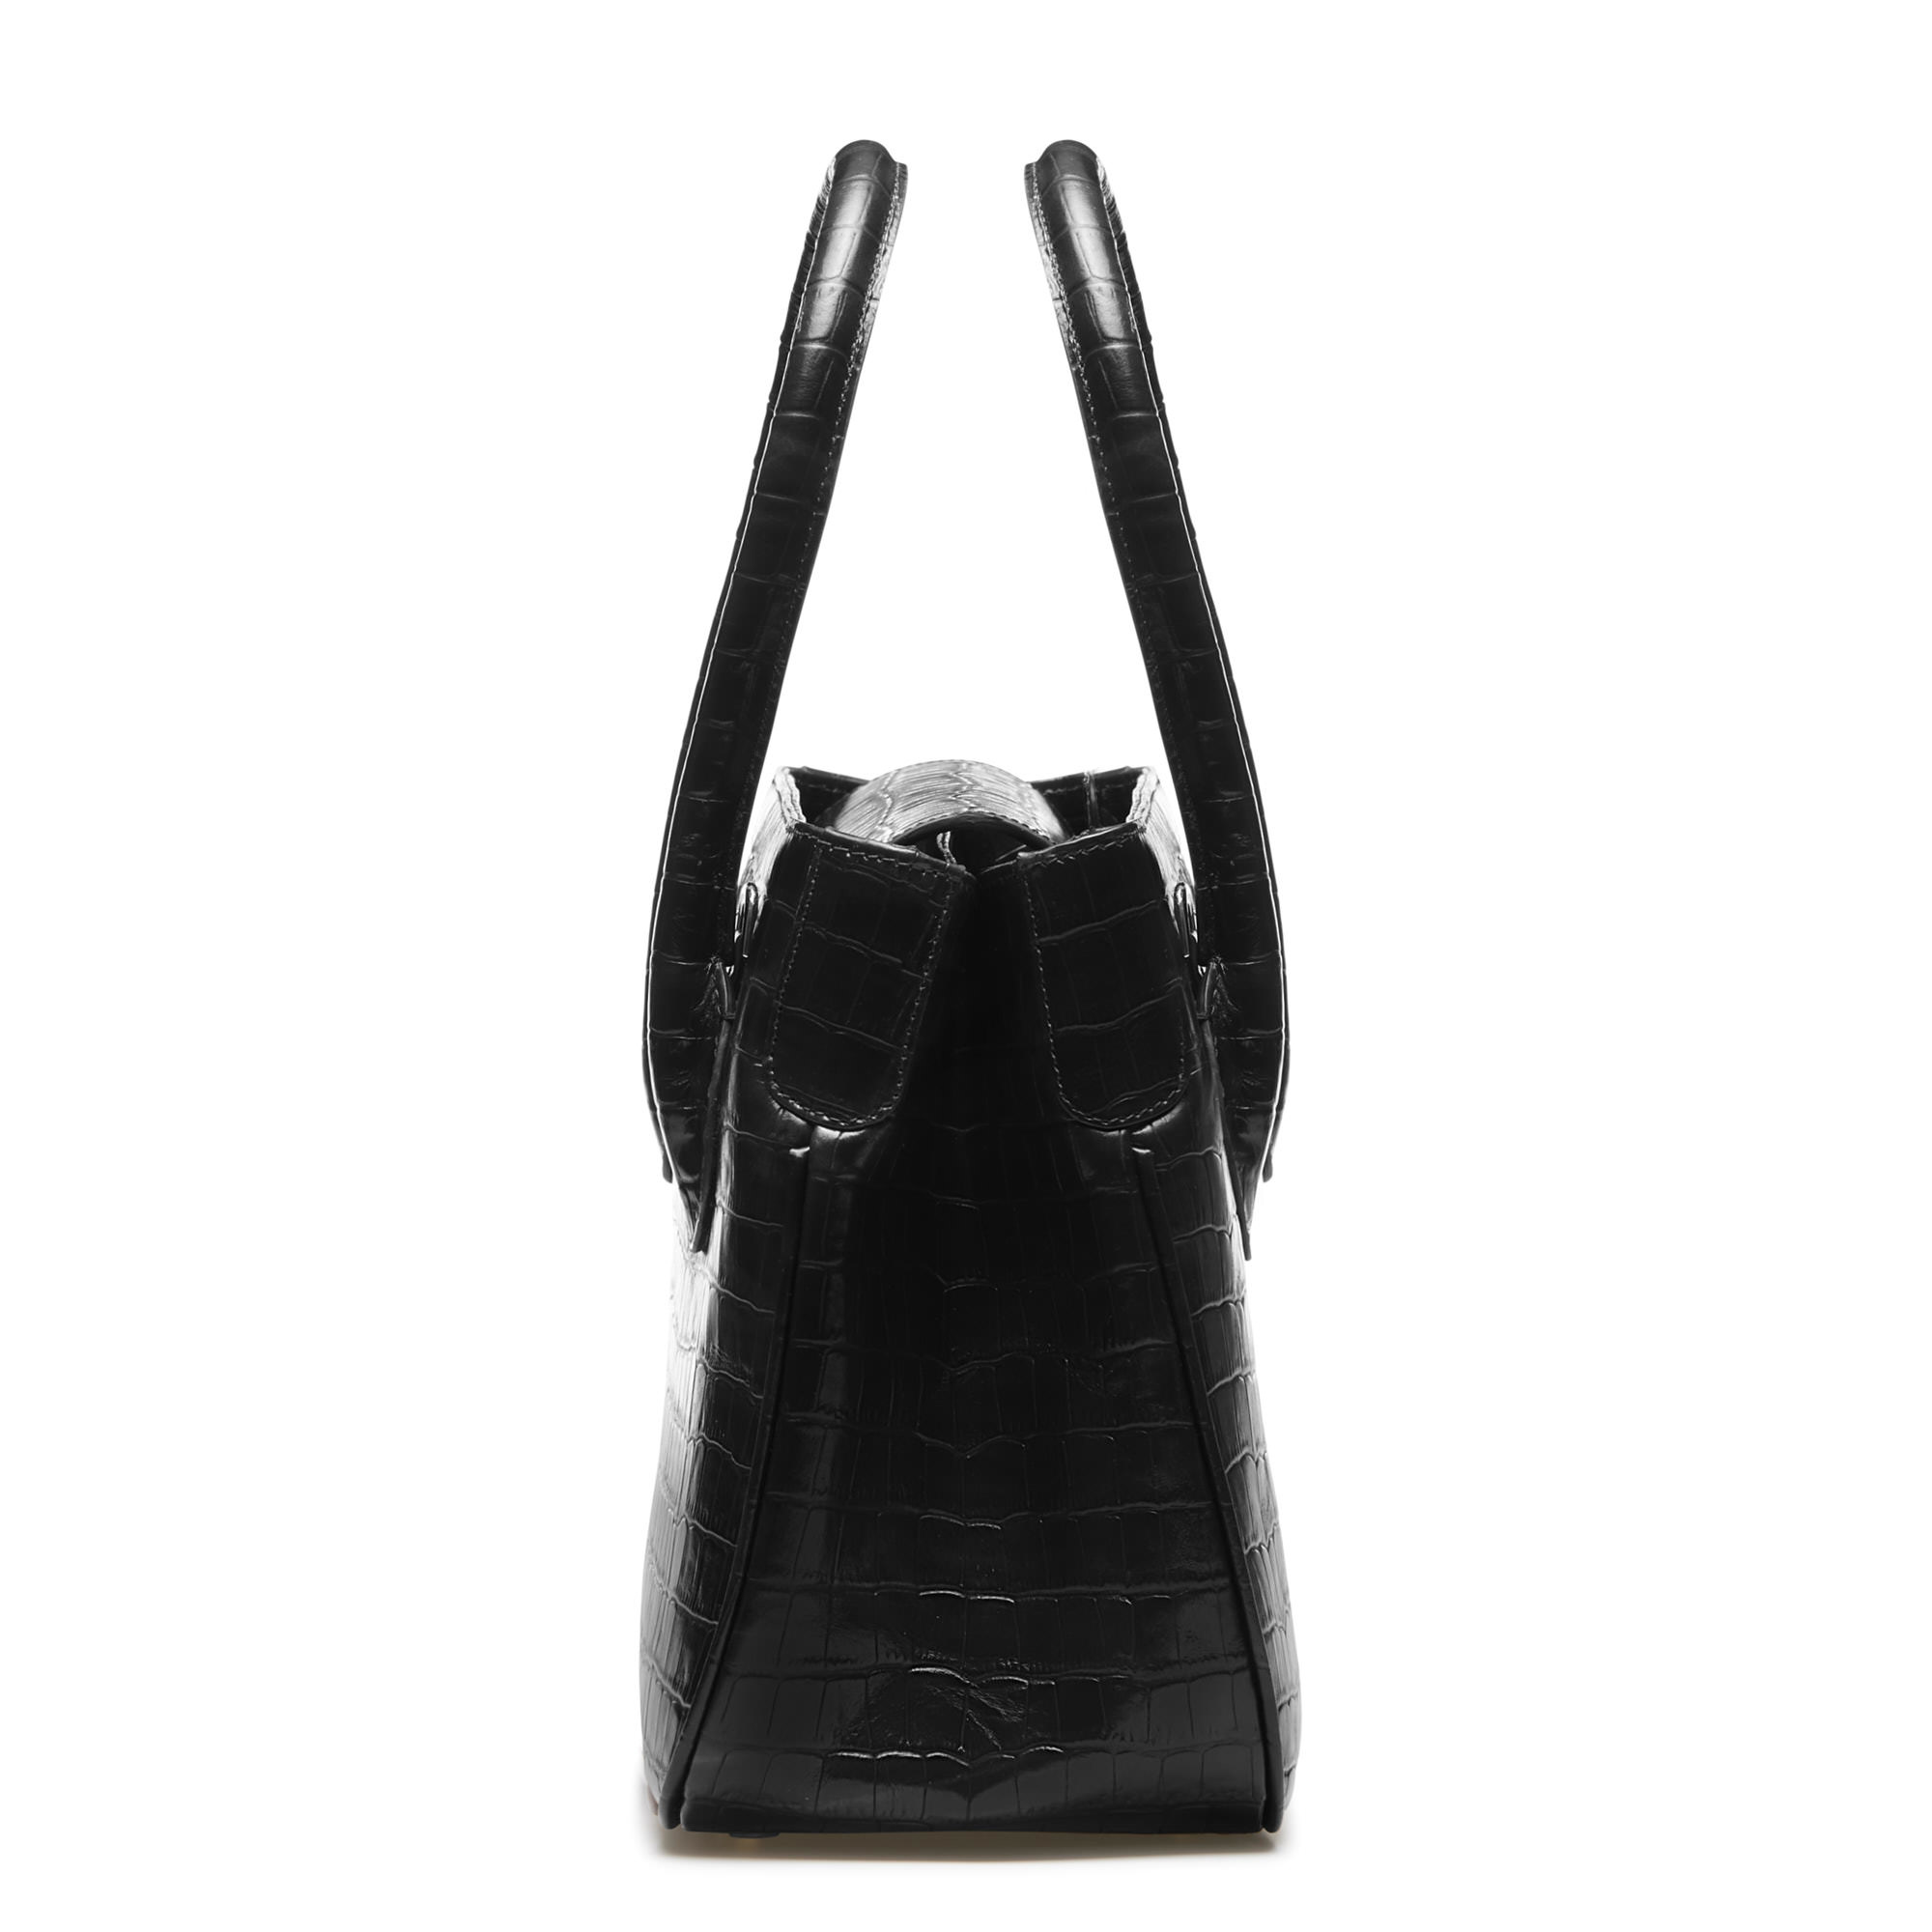 Isabel Bernard Honoré Ines croco black calfskin leather handbag